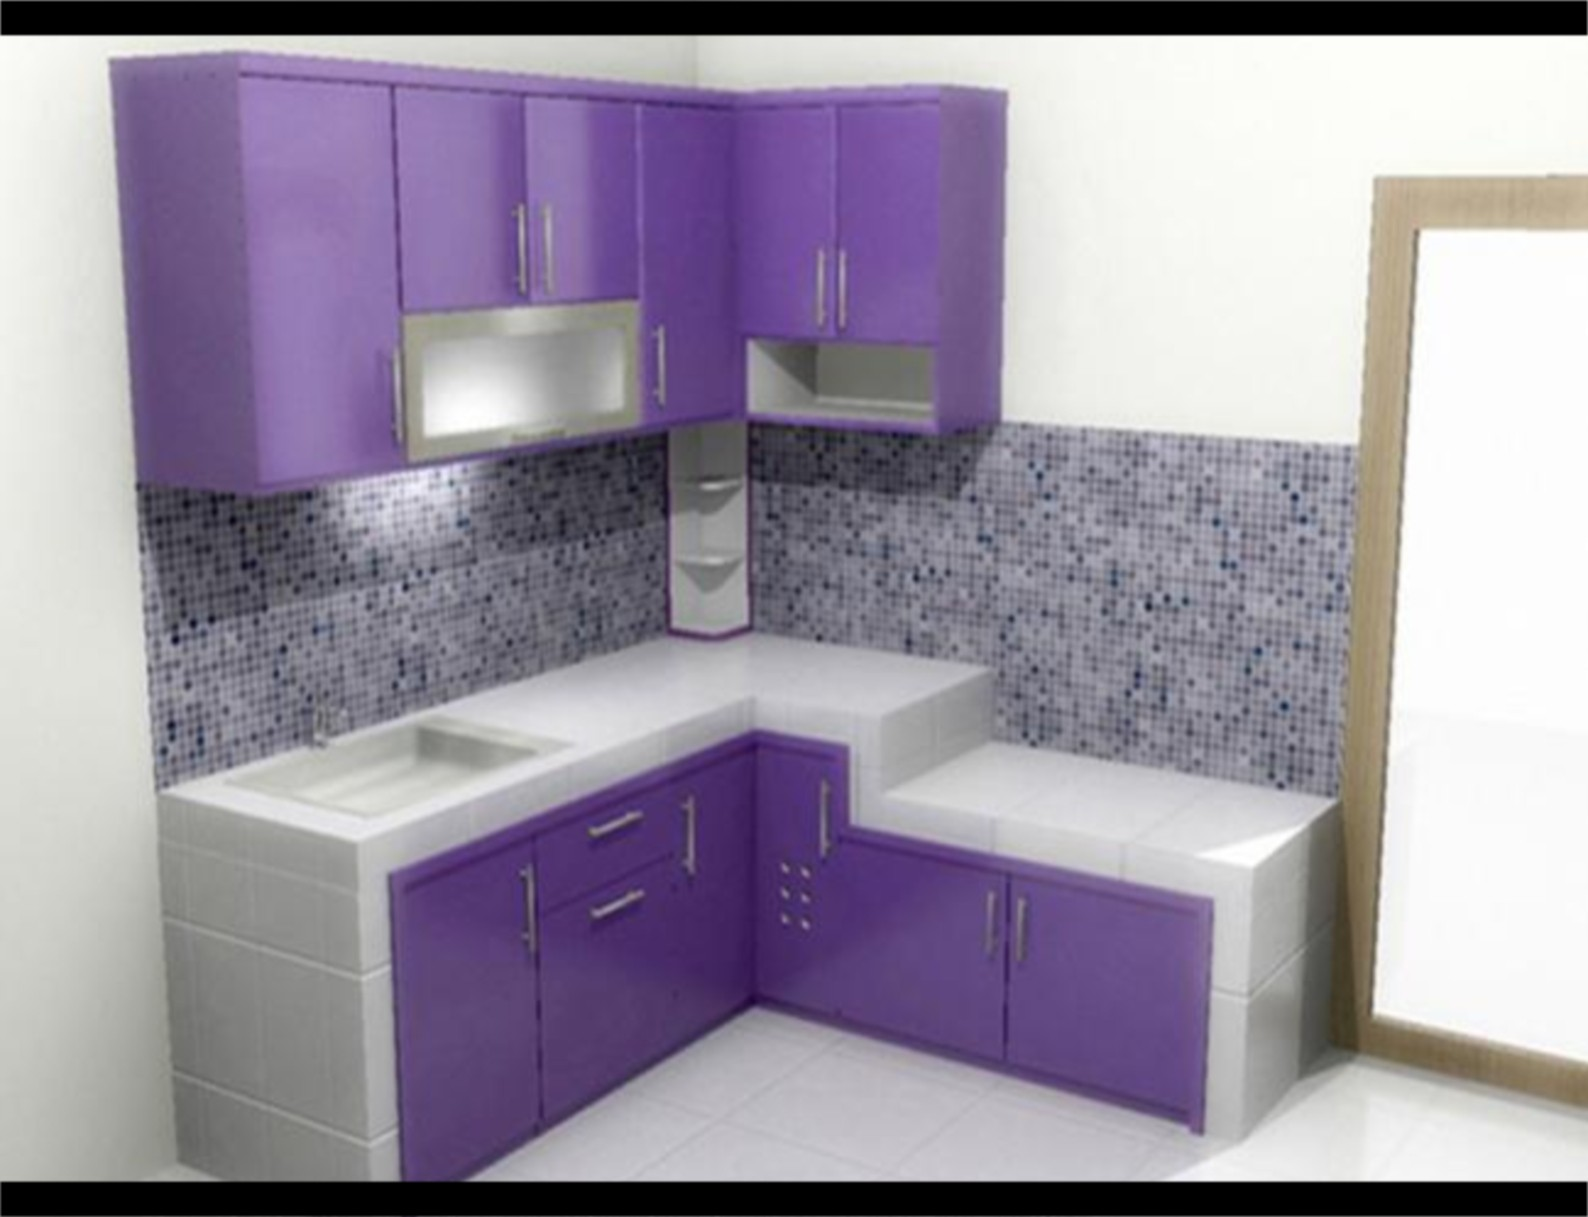 Interior dapur Minimalis Cat Warna Ungu 2